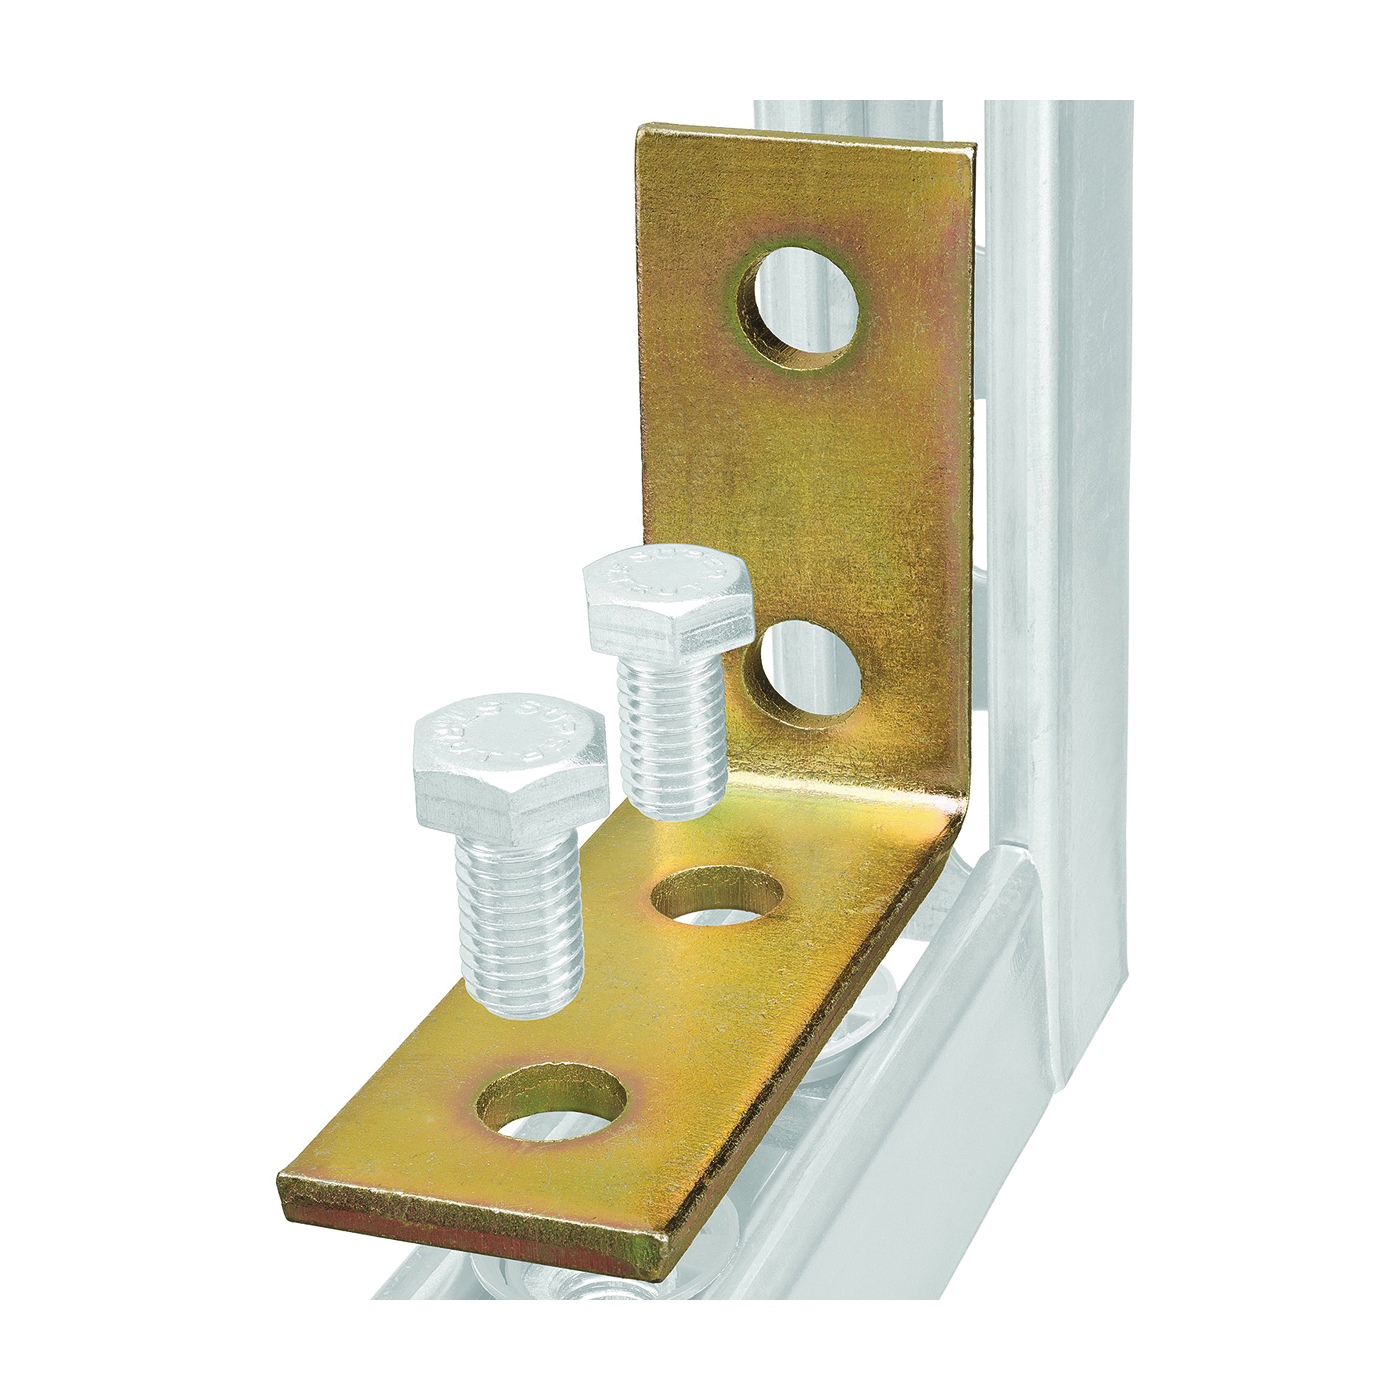 Picture of SuperStrut 200 Series ZAB205-10 Angle Bracket Fitting, Plastic, Gold, Galvanized